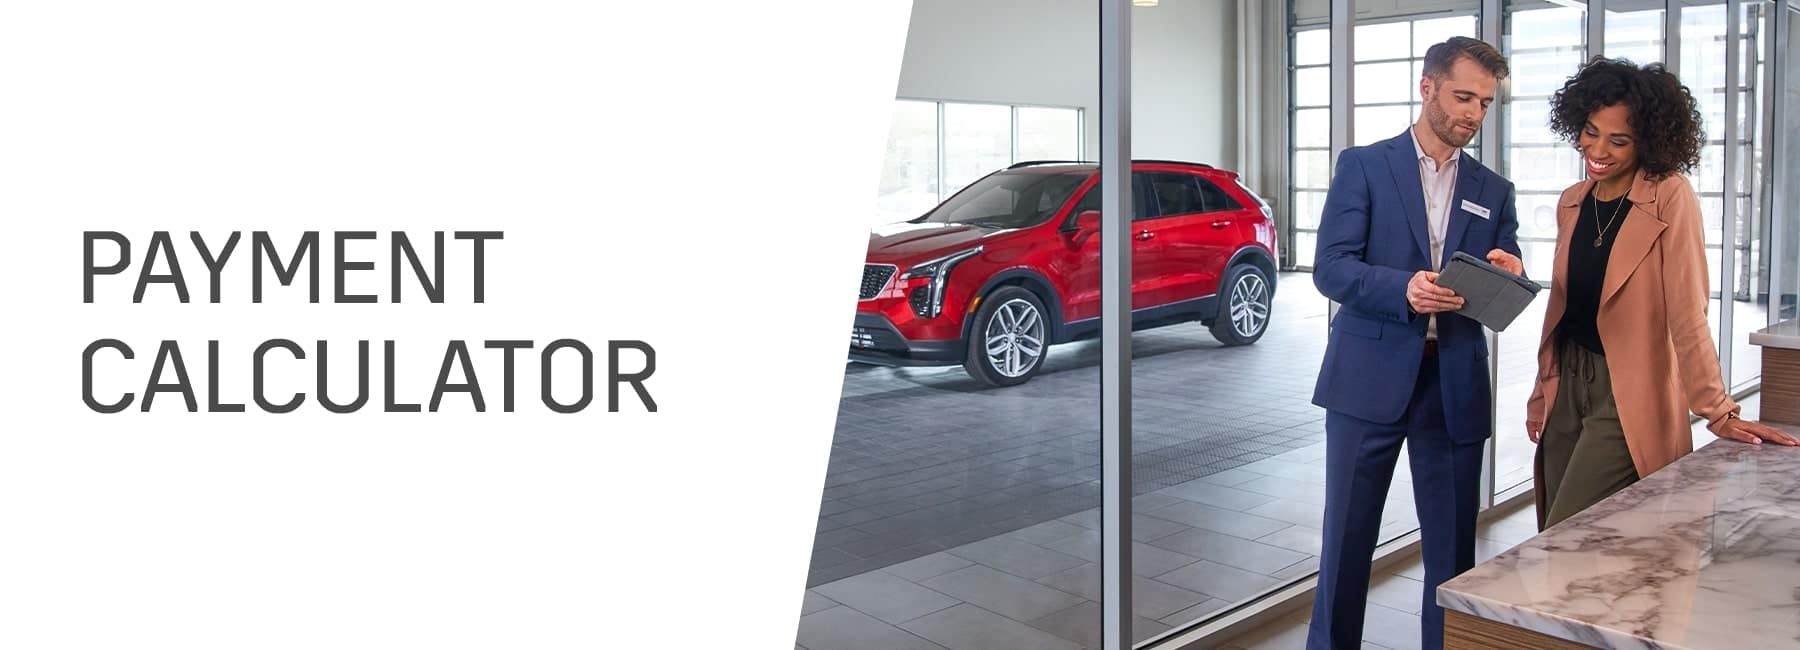 Patrick Cadillac Payment Calculator in Schaumburg IL